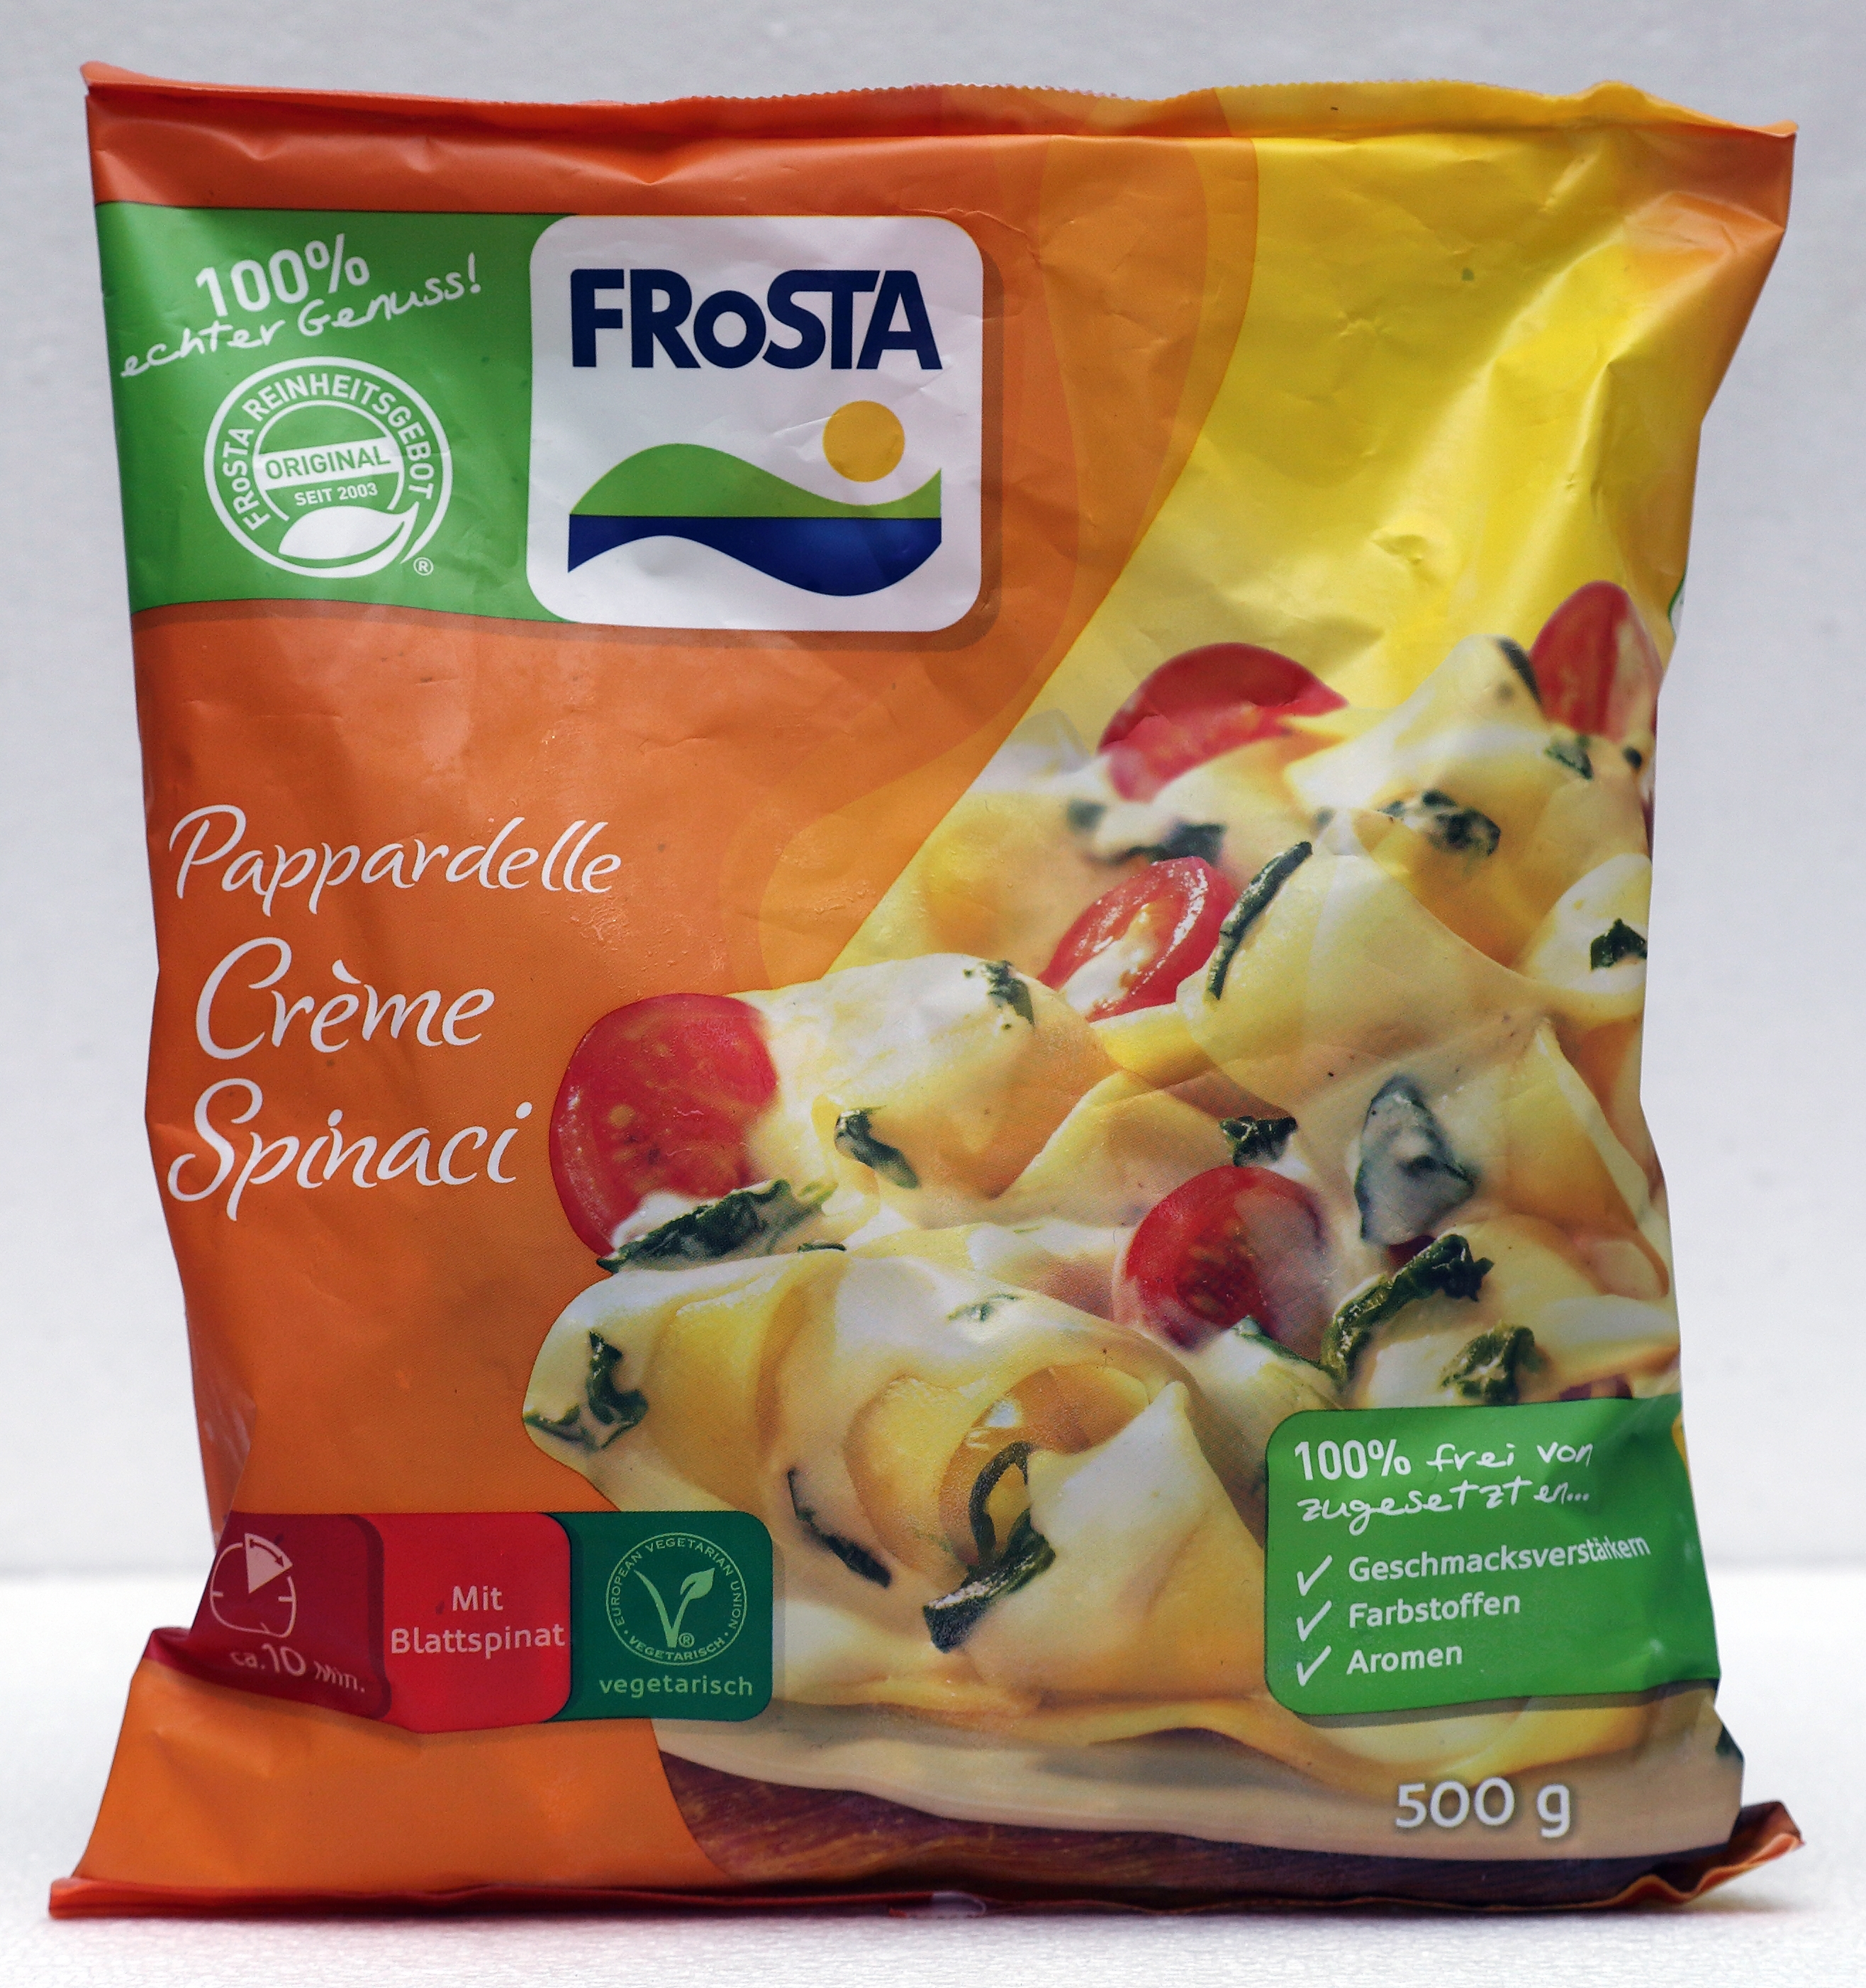 frosta-pappardelle-creme-spinaci-packung-aussehen-werbung-verpackung